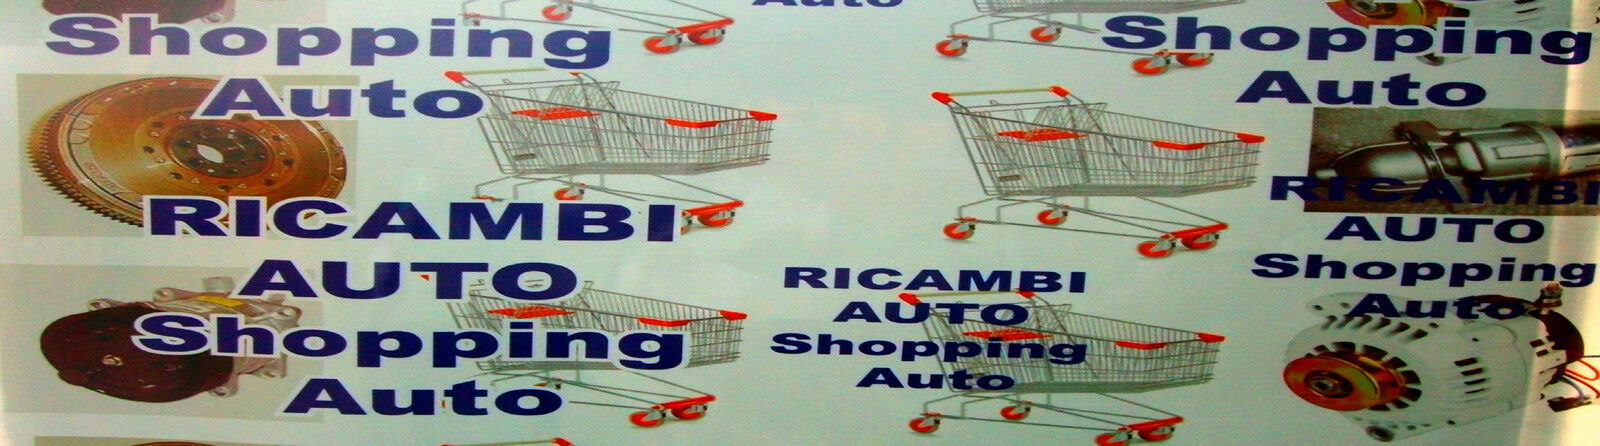 Shopping Auto _ Ricambi On-Line